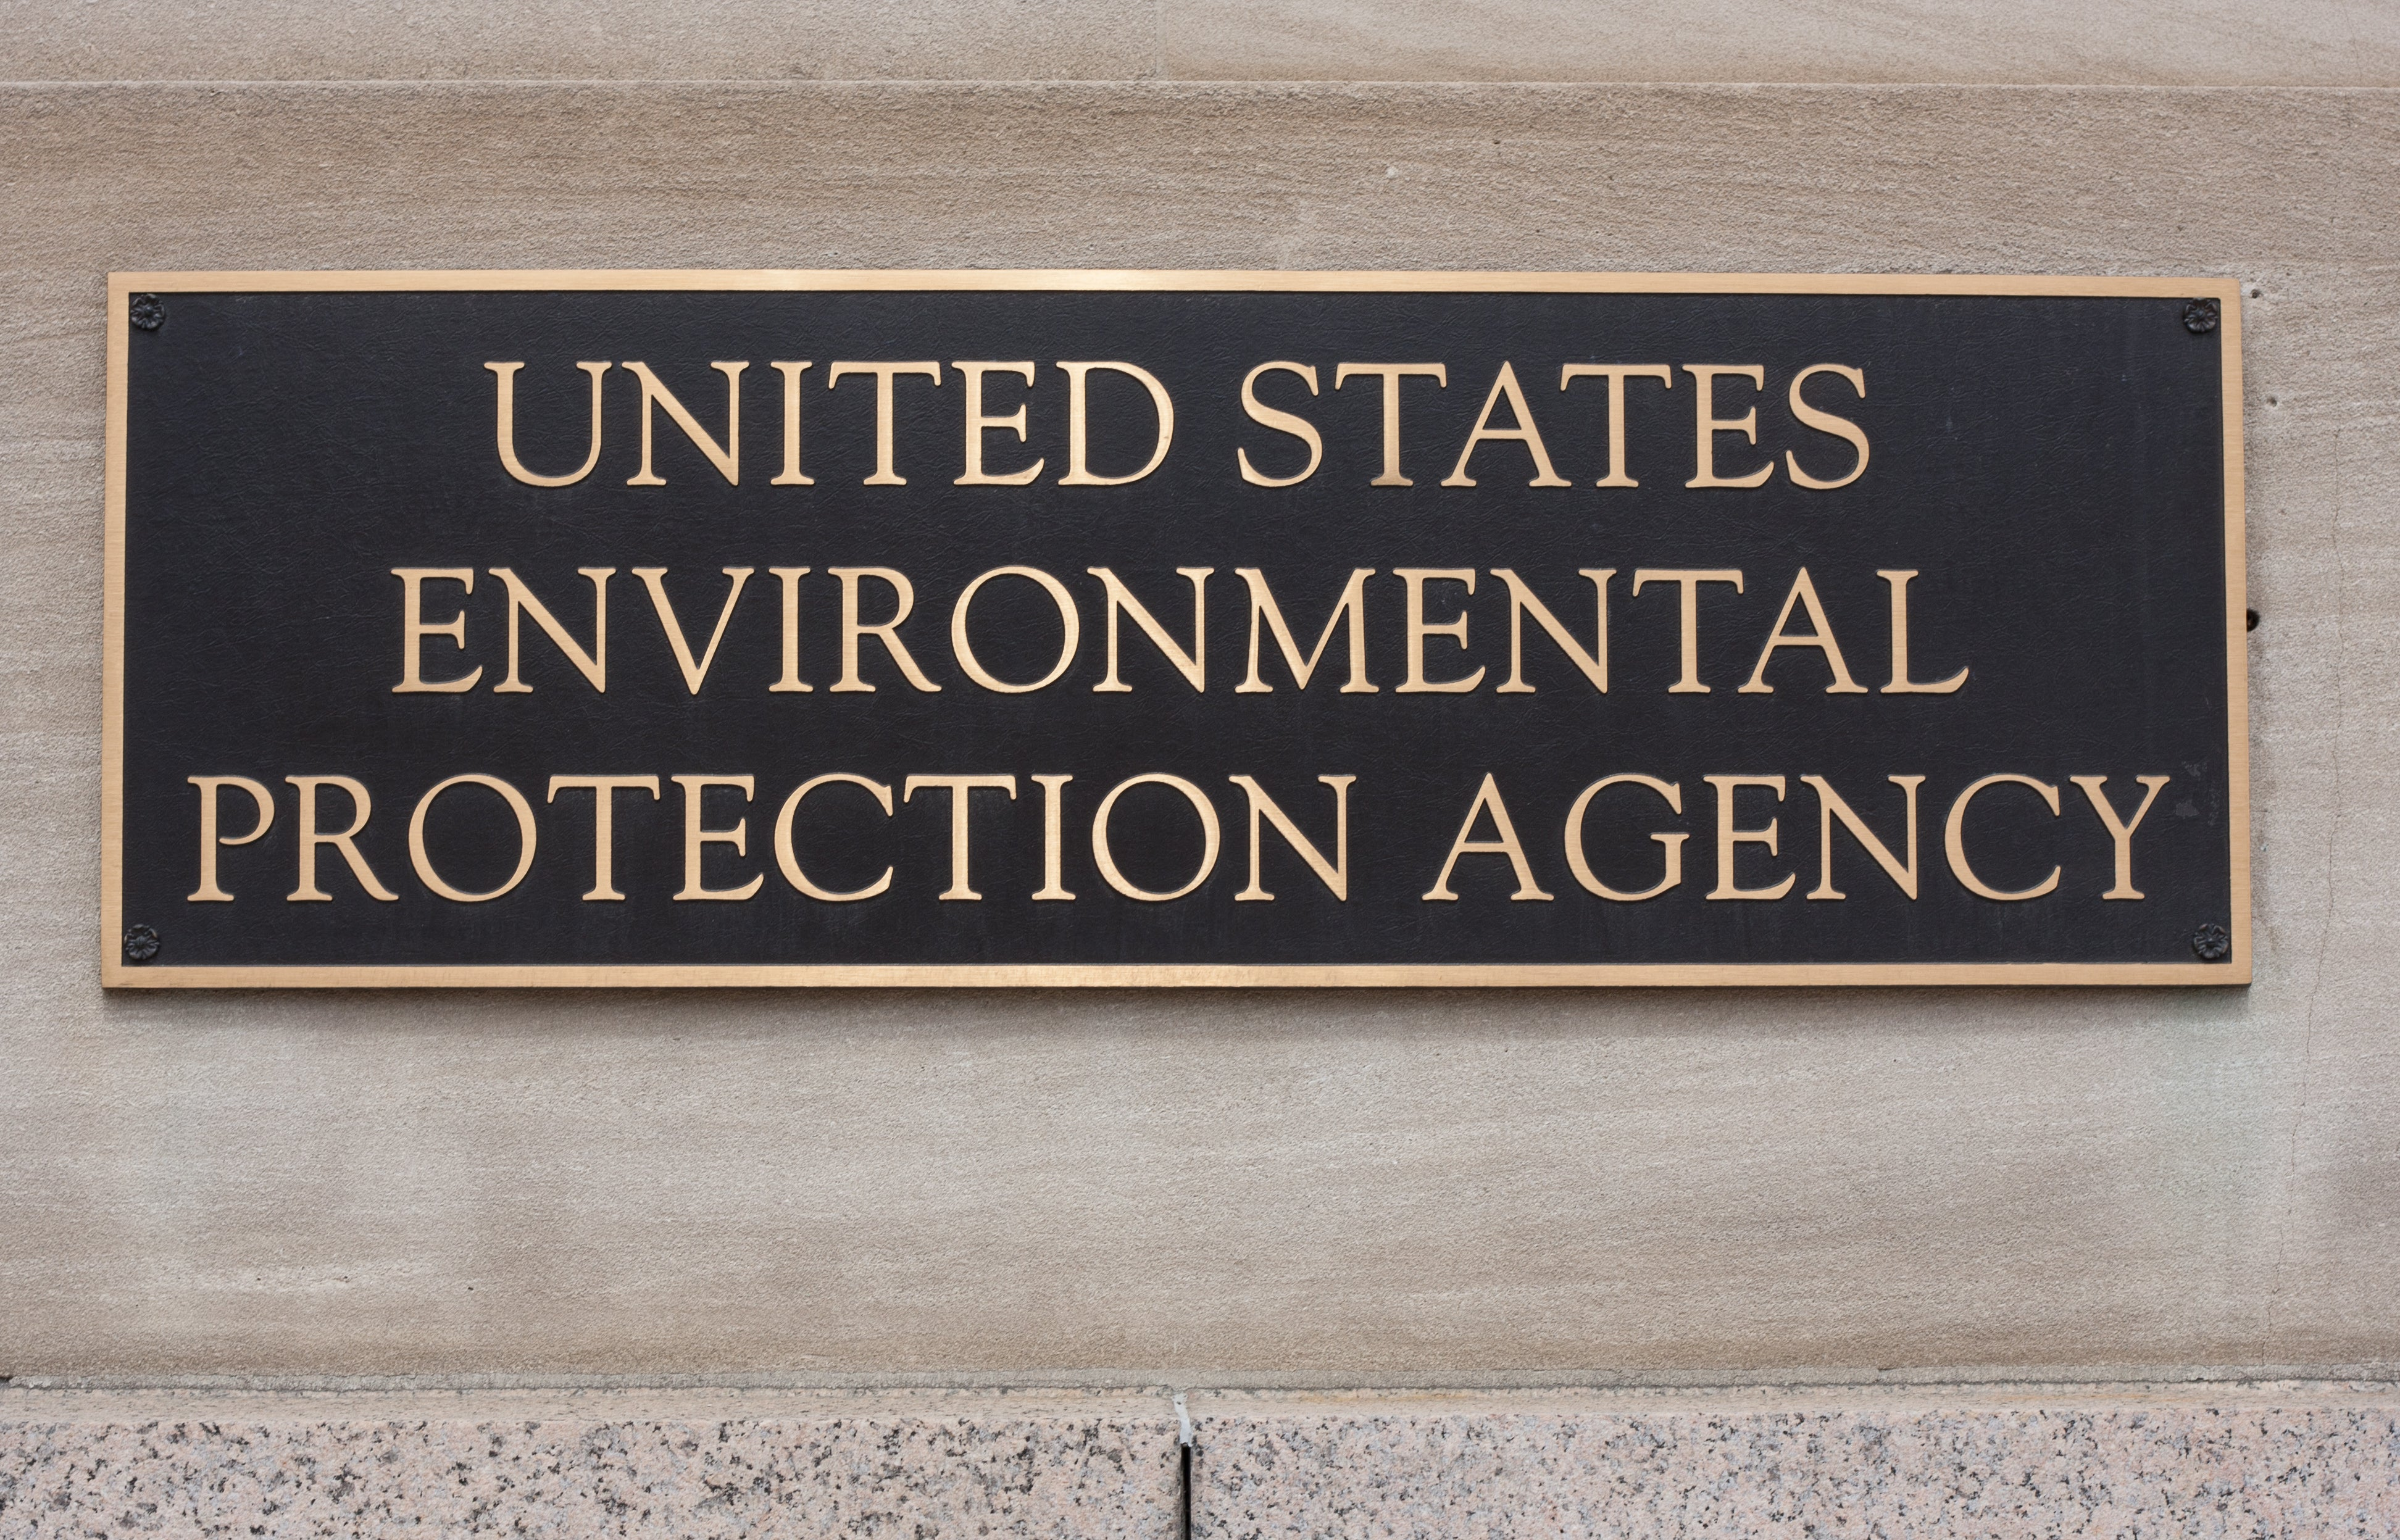 EPA Just Scrubbed Even More Mentions of Climate from Its Web